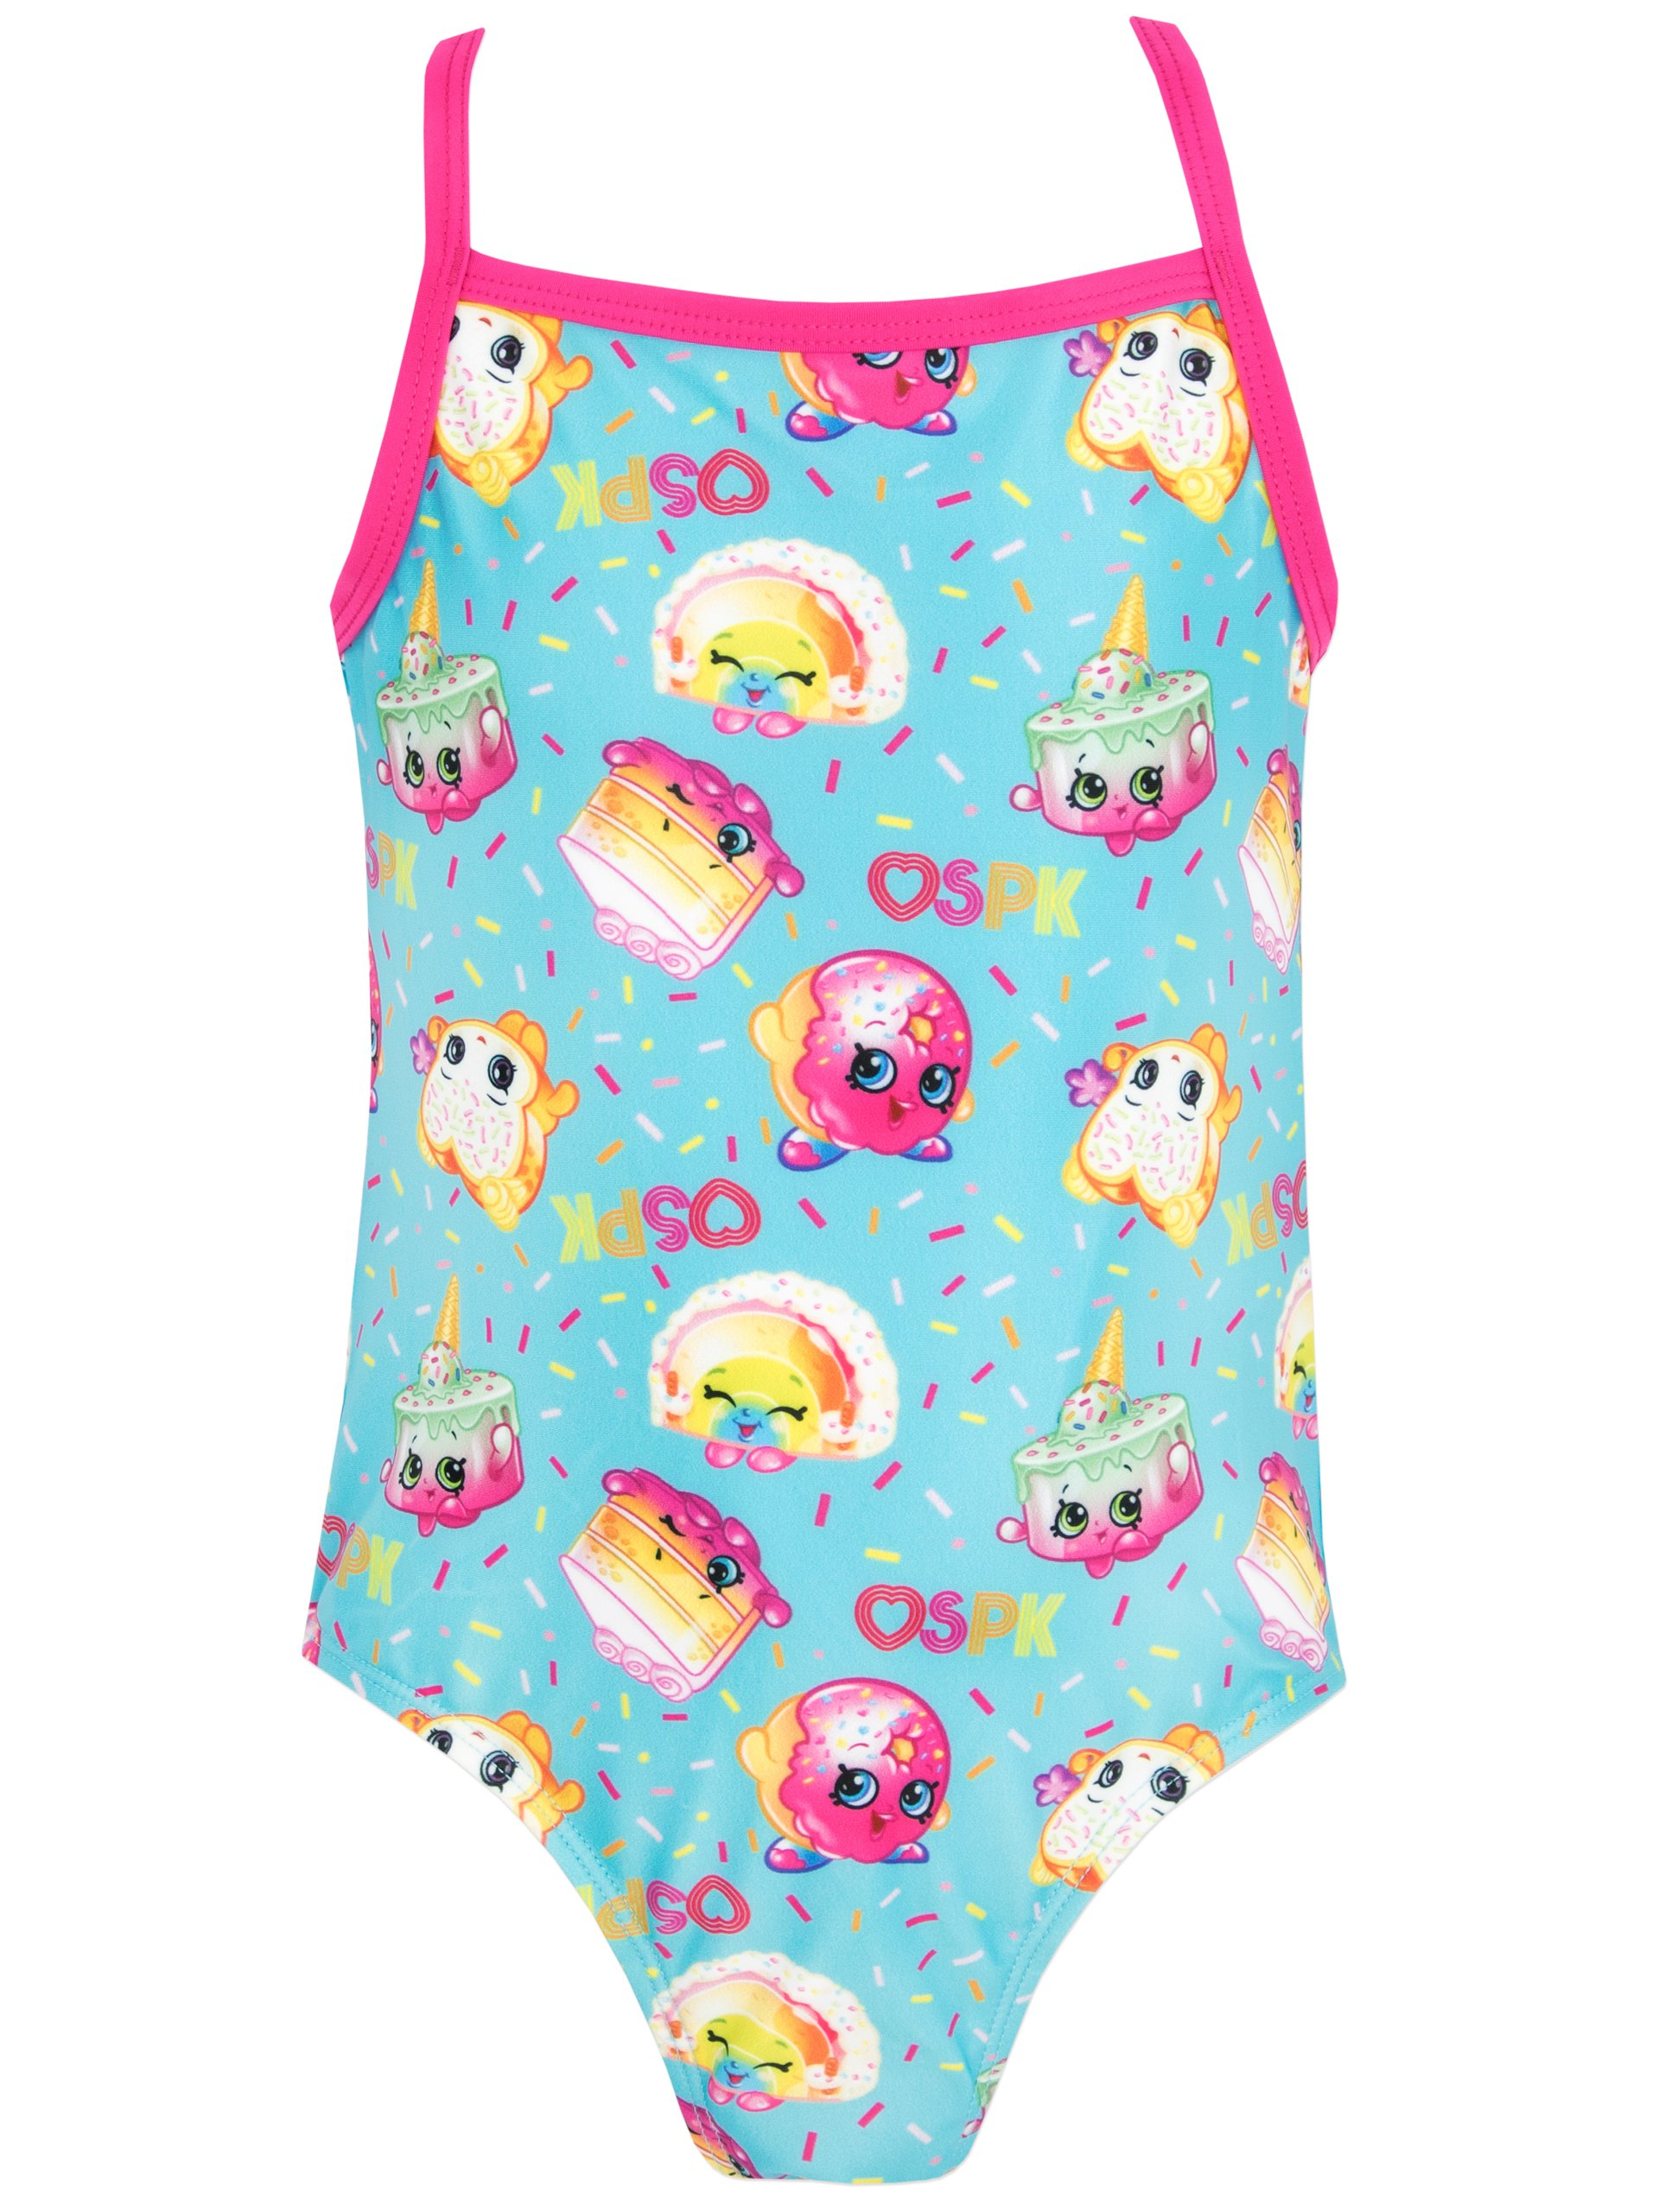 Shopkins Girls' Shopkins Swimsuit 8 by Shopkins (Image #1)